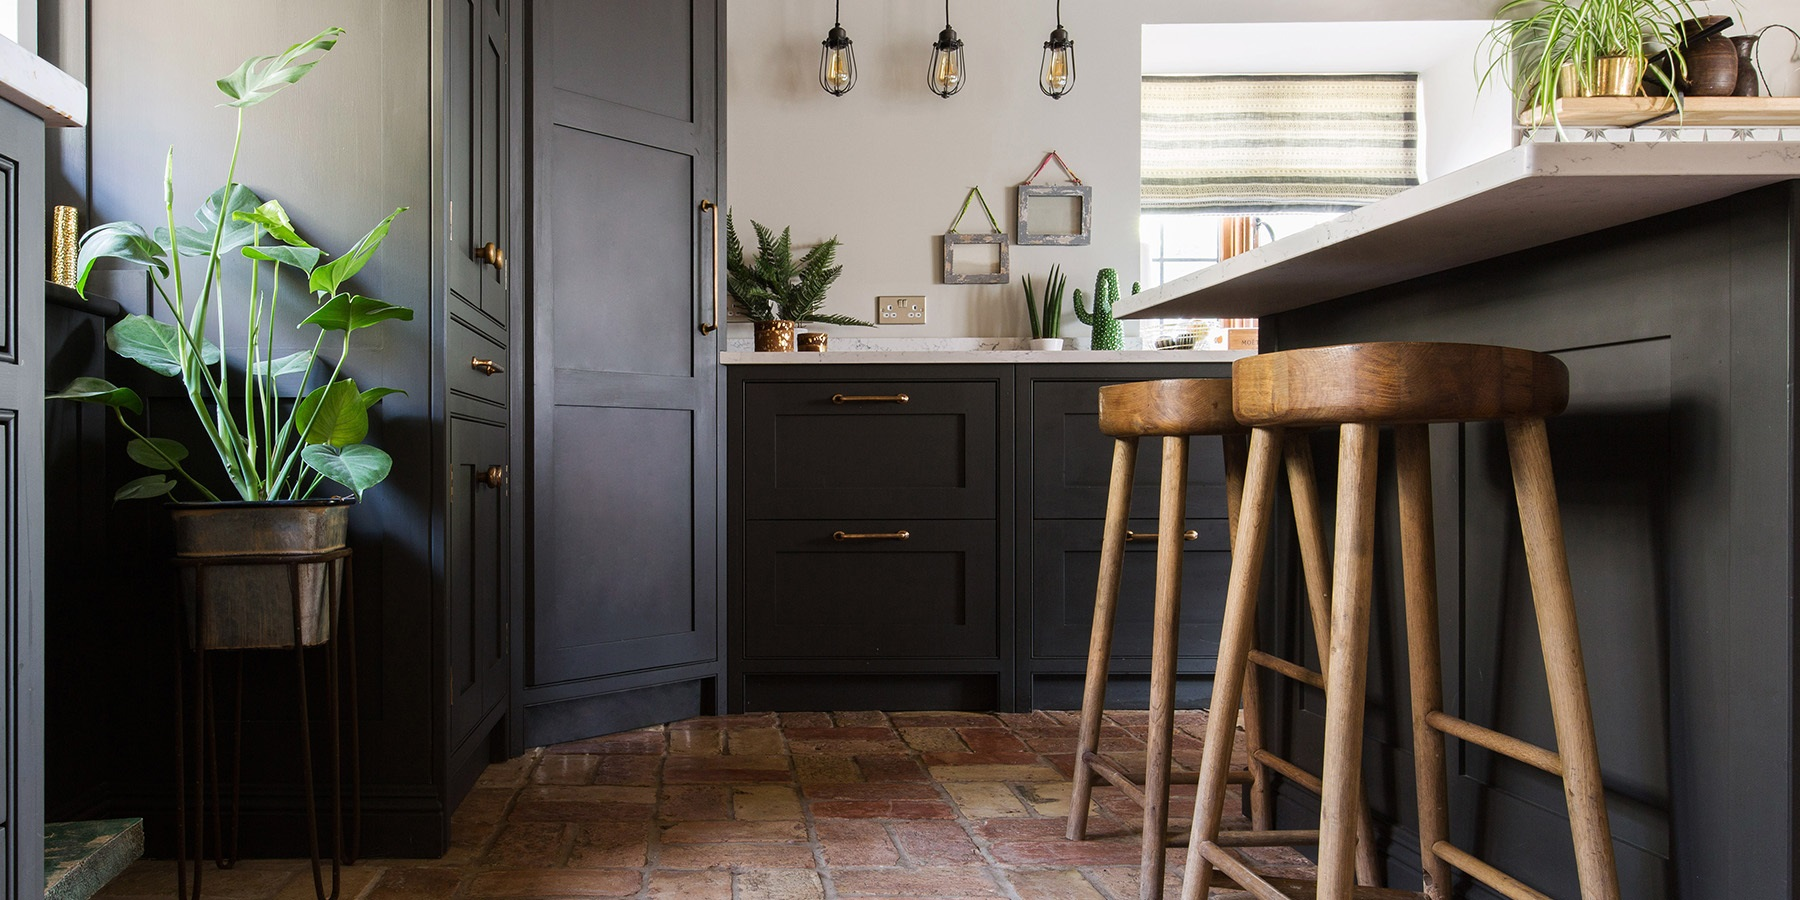 Bespoke Country Style Shaker Kitchen - Burlanes handmade Wellsdown kitchen with white worktops, bronze hardware and handmade wooden breakfast bar stools.